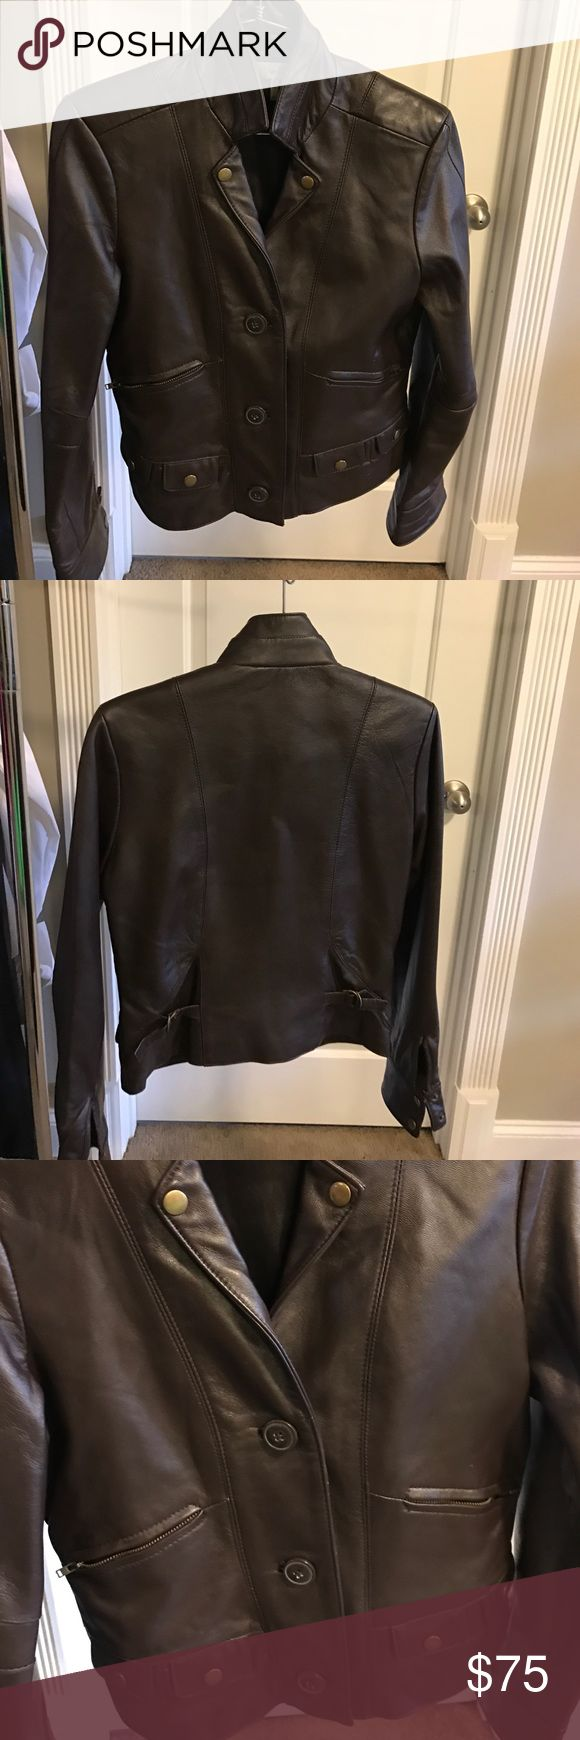 Women's leather jacket!!!! Chocolate ladies leather jacket with button front and zipper pockets!!! So cute!! Barely worn!!!!💕💕💕 Jackets & Coats